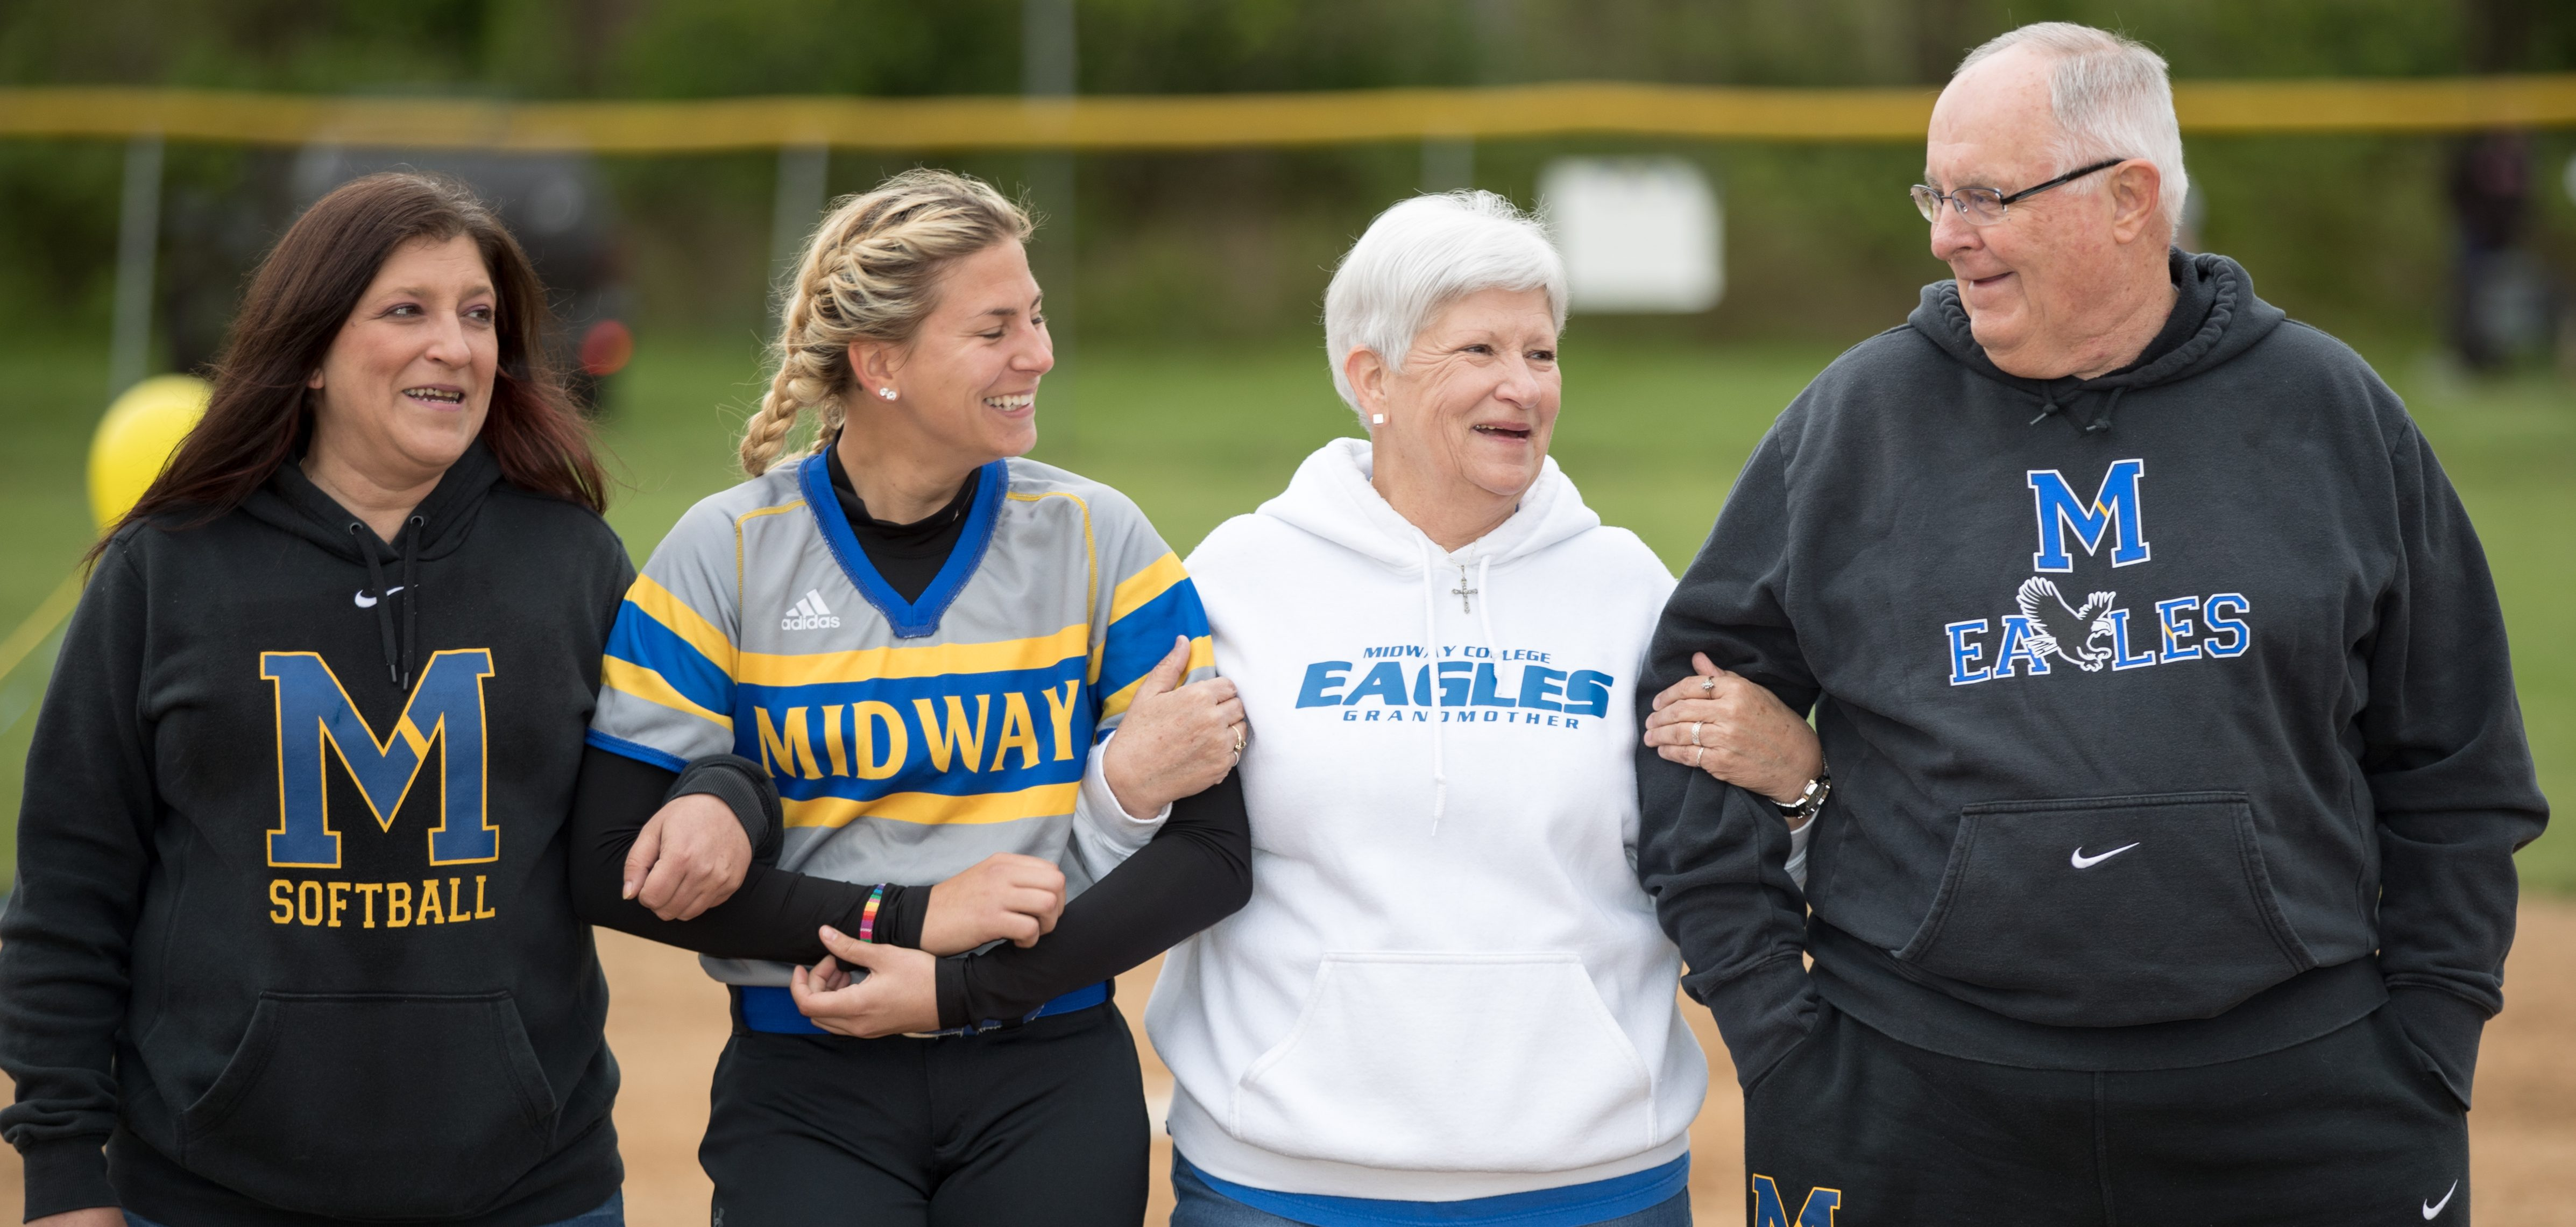 Family Weekend at Midway University